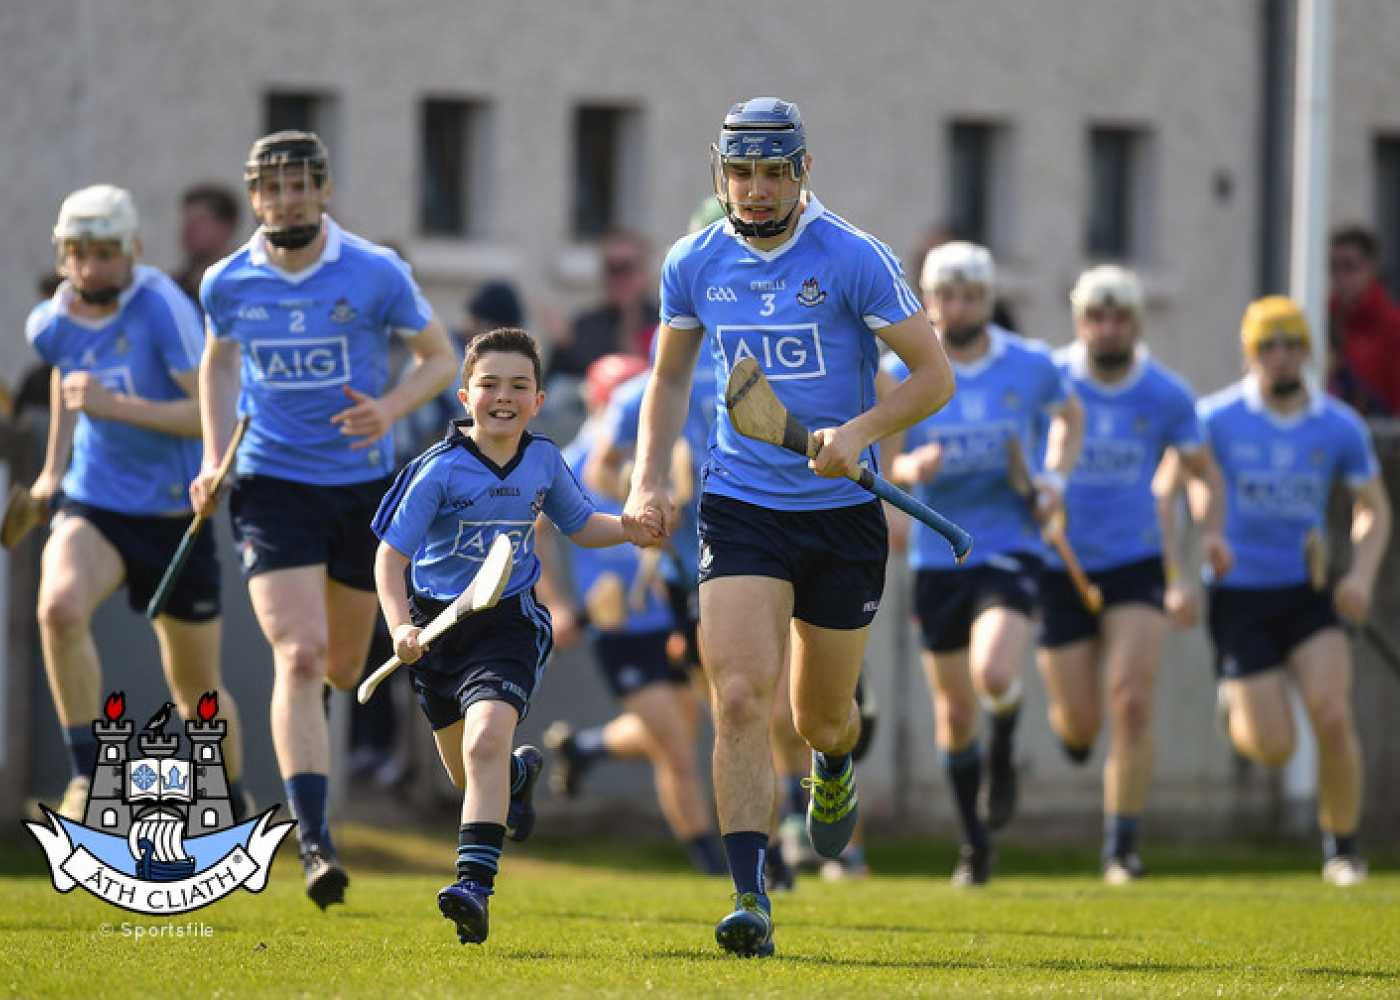 Senior hurlers hoping to maintain run in Laois duels